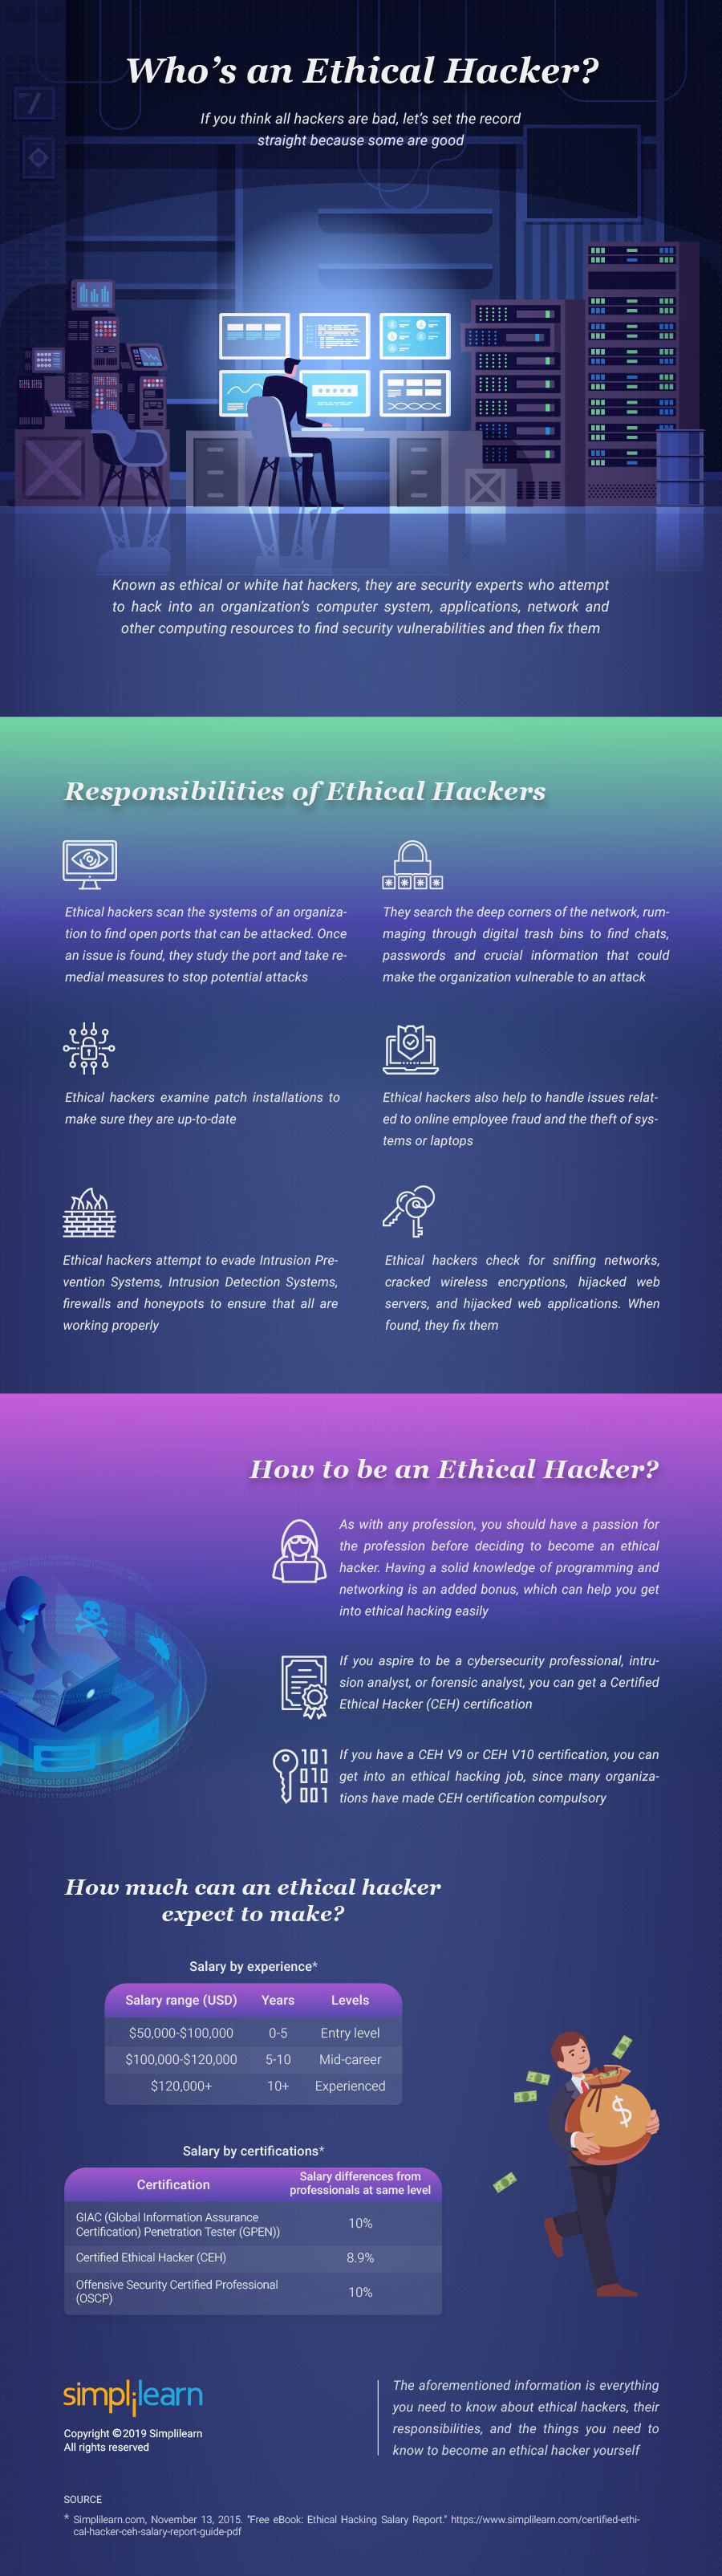 who is an ethical hacker - The Easiest Way to Learn Ethical Hacking